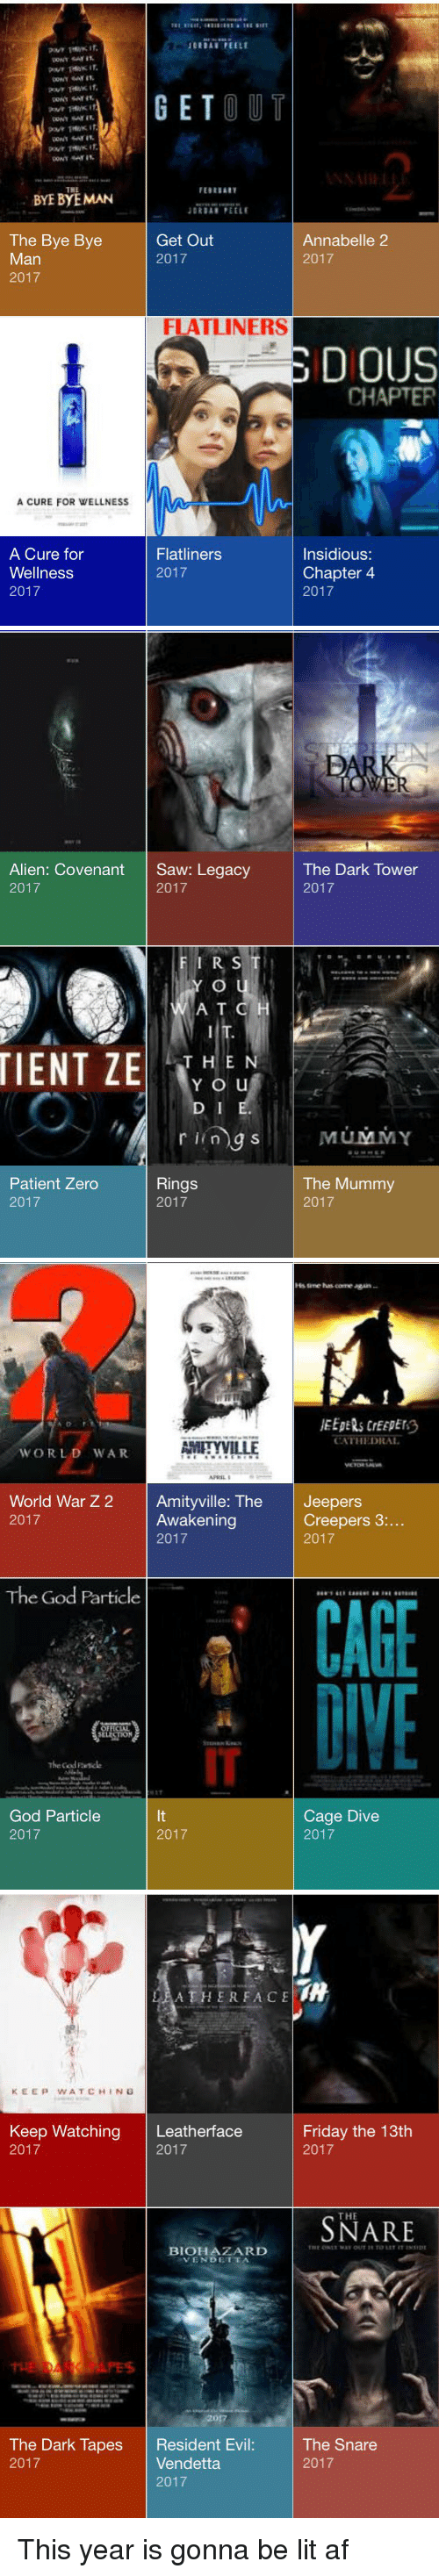 Funny, Friday the 13th, and Lit AF: pour THWK 41.  BYE BYE MAN  The Bye Bye  Man  2017  A CURE FOR WELLNESS  A Cure for  Wellness  2017  GET  OUT  JORDAN PE ELE  Get Out  Annabelle 2  2017  2017  FLATLINERS  DIOUS  CHAPTER  Flatliners  Insidious:  Chapter 4  2017  2017   Alien: Covenant  Saw: Legacy  2017  2017  FIRST  YLO  A T C  TIENT ZE  THE N  Y O u  D I  r ling S  Rings  Patient Zero  2017  2017  PAR  The Dark Tower  2017  MUMMY  The Mummy  2017   CATHEDRAL  AMITYVILLE  WORLD WAR  APRIL  World War Z 2  Amityville: The  Jeepers  Creepers 3  Awakening  2017  2017  2017  The God Particle  CAGE  The Good  Cage Dive  God Particle  2017  2017  2017   A THER FACE  KEEP WATCH IN G  Keep Watching  Leatherface  Friday the 13th  2017  2017  2017  THE  BIOHAZARD  THE ONMI WAN OUT TO LIT ET INSIDE  NVENDETTA  The Snare  The Dark Tapes  Resident Ev  Vendetta.  2017  2017  2017 This year is gonna be lit af